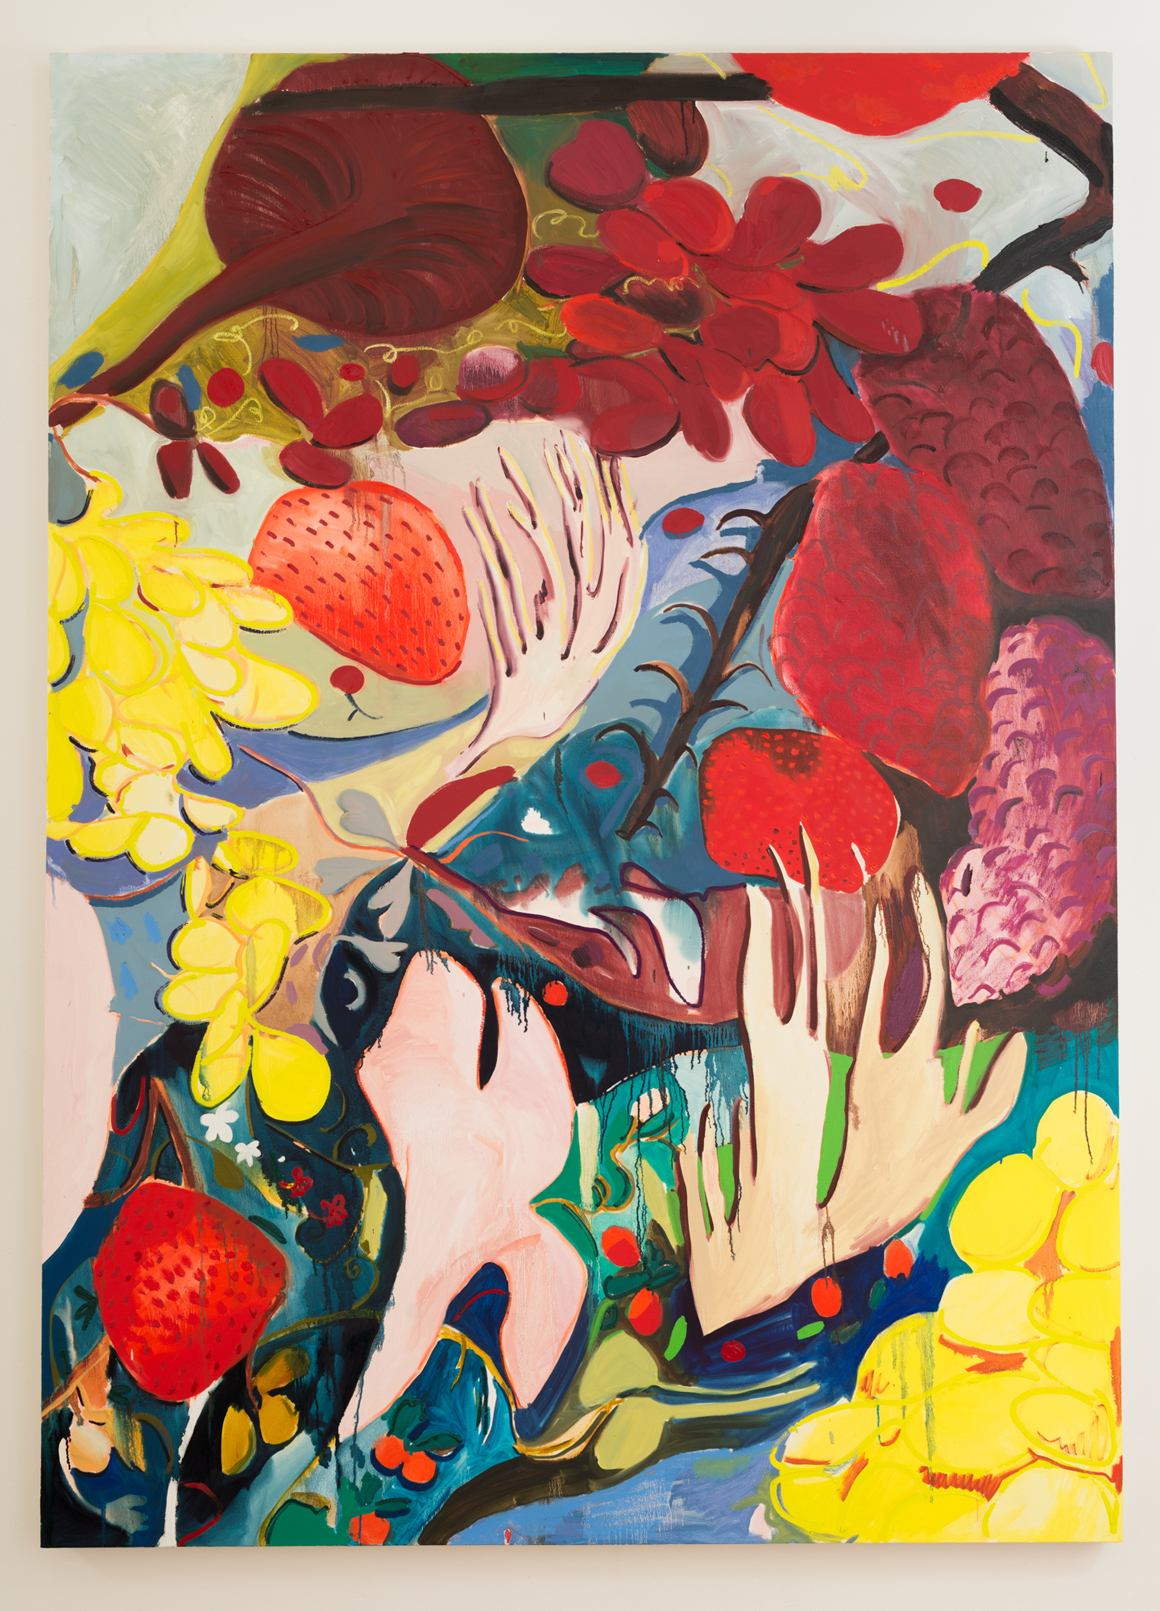 """<p><span class=""""name"""">Jasmine Little</span><br><em>Fruit Still Life</em>92 x 66 in (233.7 x 167.6 cm)<br>2018<br><a class='inquire' href='mailto:info@gildargallery.com?subject=Artwork Inquiry JLIT0008&body=I am interested in finding out more about Fruit Still Life by Jasmine Little'>Inquire</a></p>"""